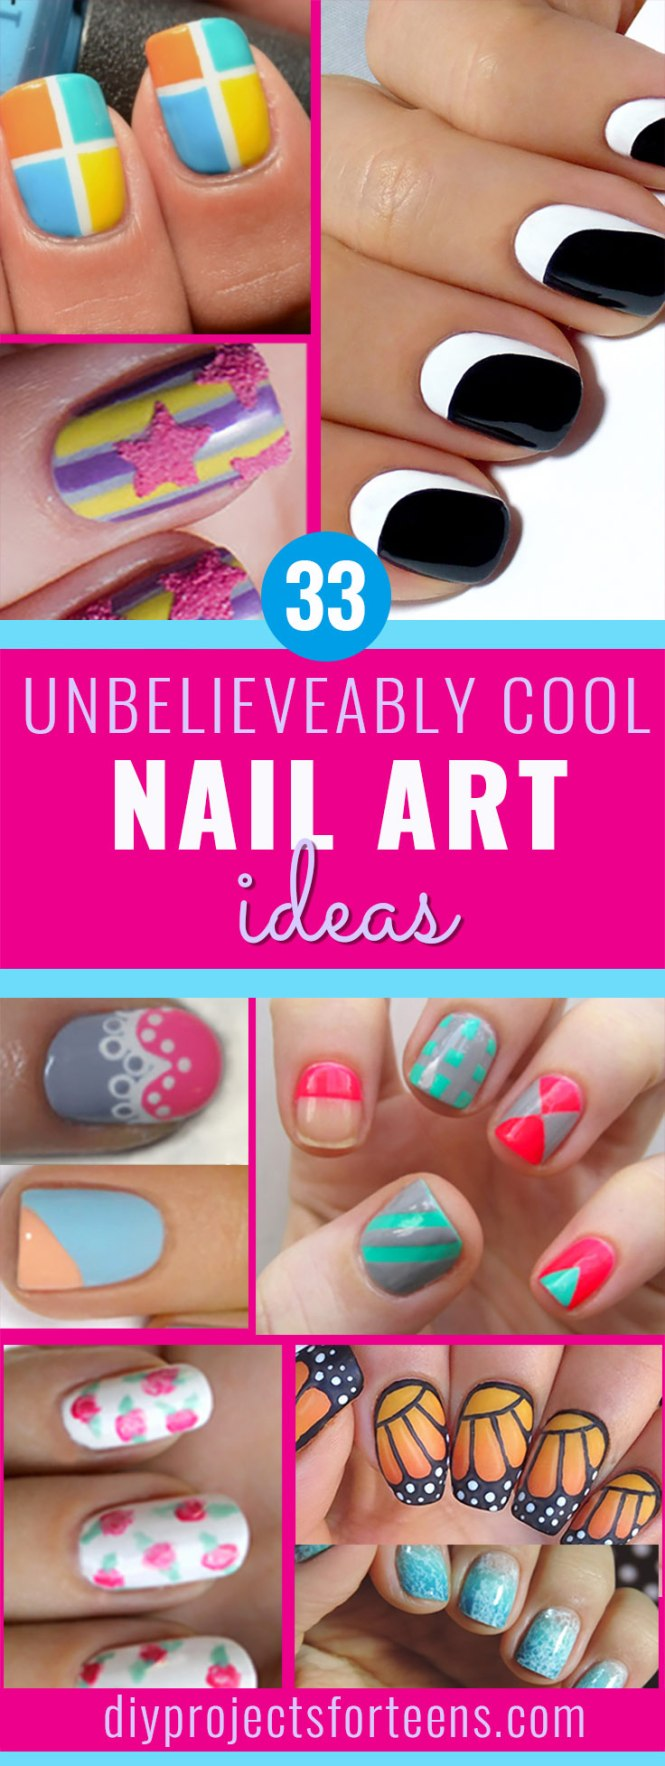 Fun Easy Nail Art How You Can Do It At Home Pictures Designs For The